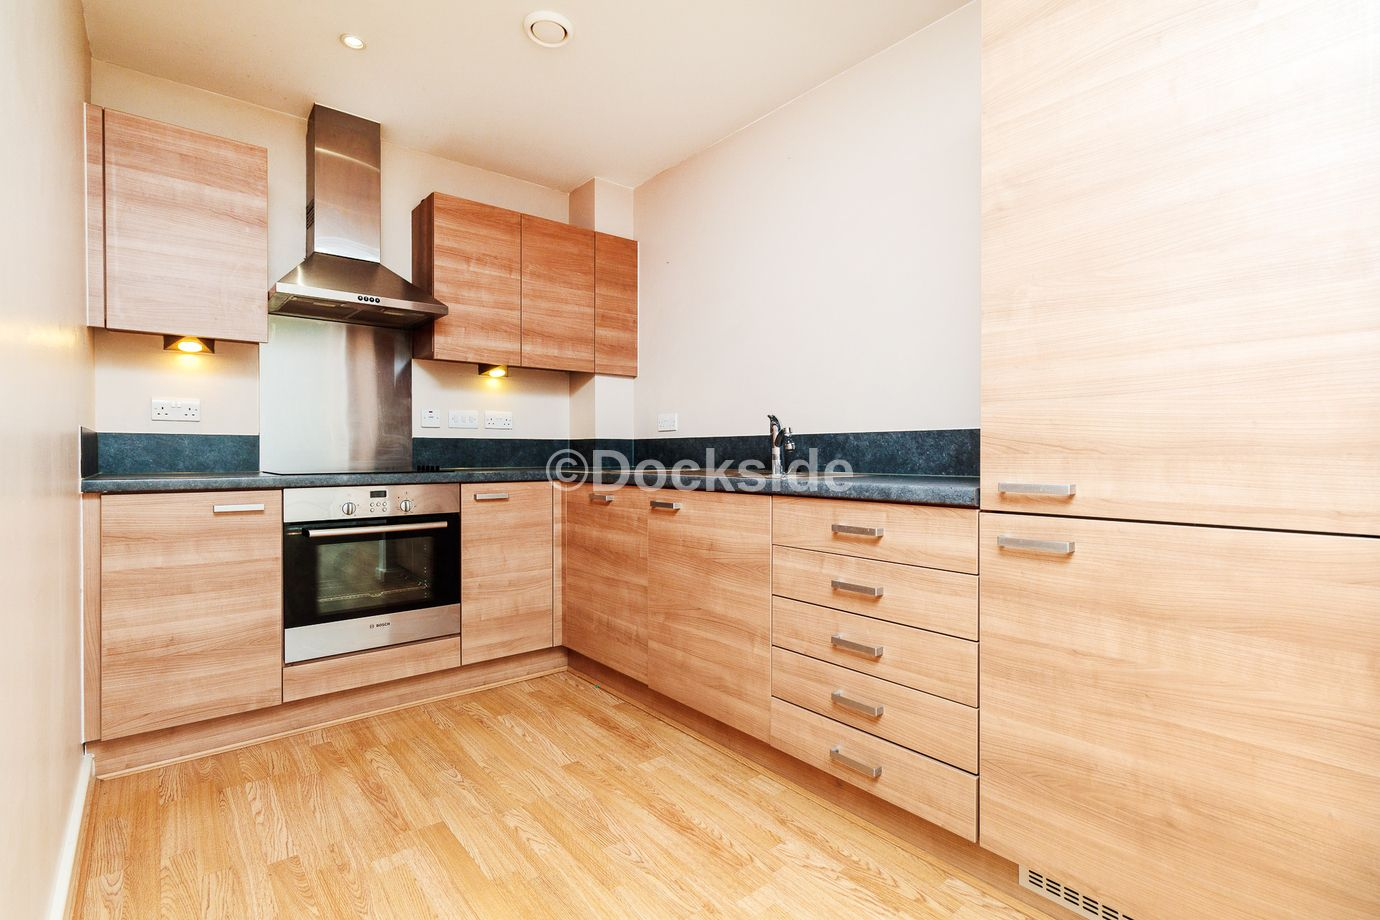 1 bed  for sale in Clovelly Place  - Property Image 1